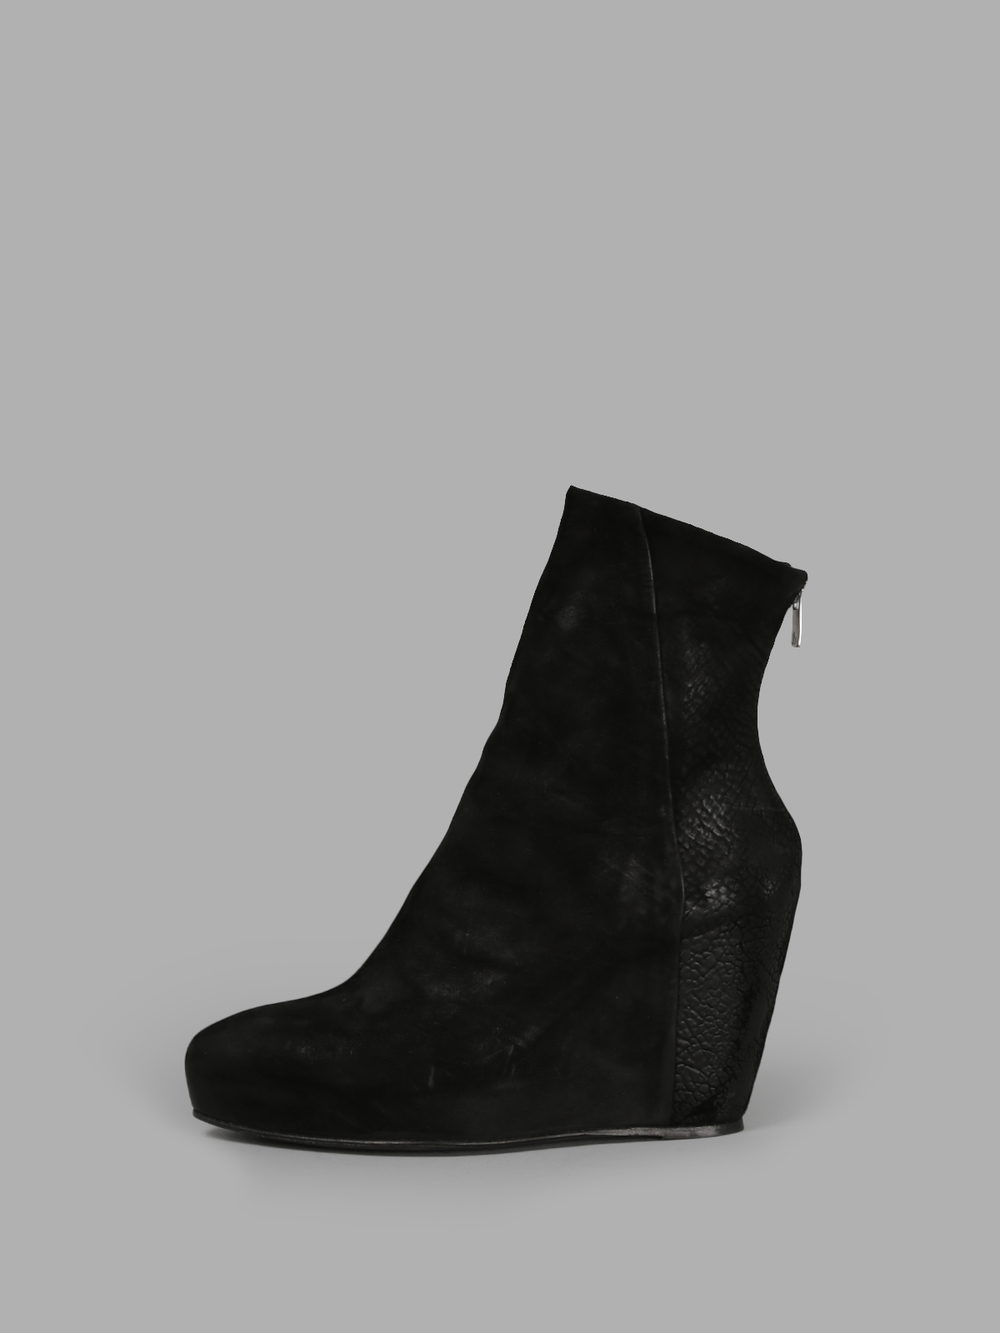 DREAM BOOTS - _____________I've worn plain black wedge boots forever and these Last Conspiracy versions are my dream boots. Sold out in my size sadly.